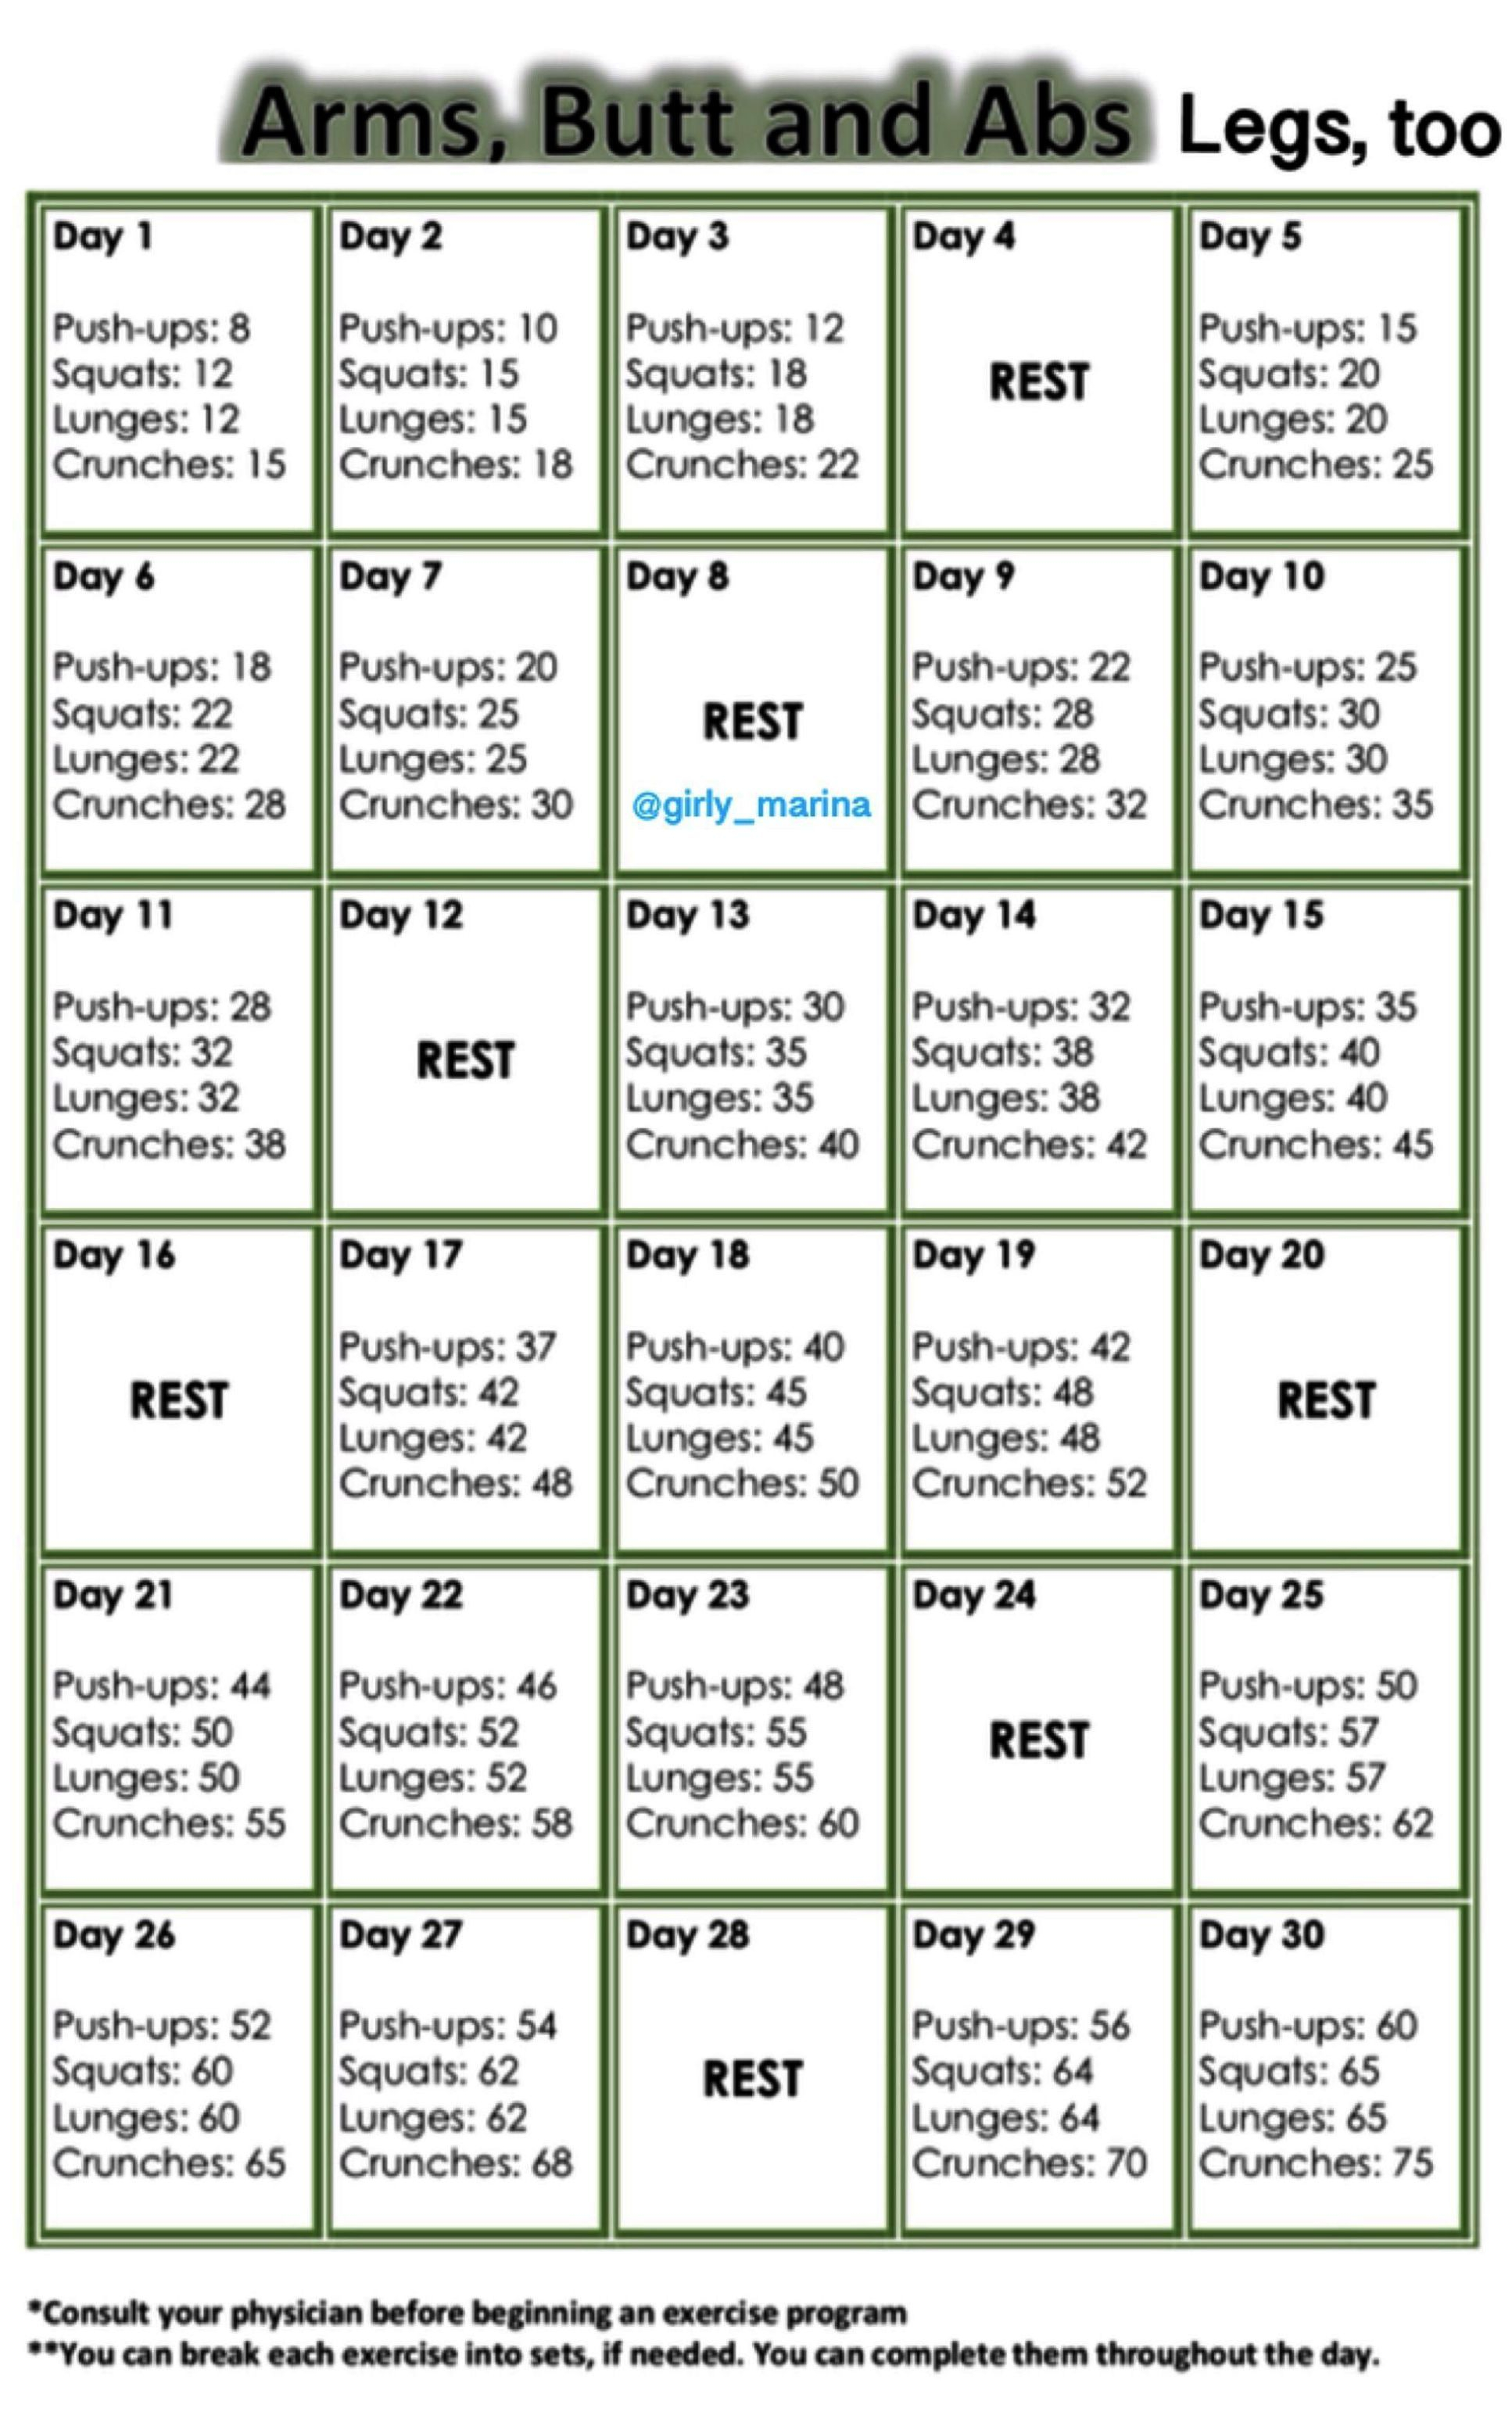 Newabworkout | 30 Day Ab Workout, 30 Day Workout Pertaining To 30 Day Ab Workout Schedule